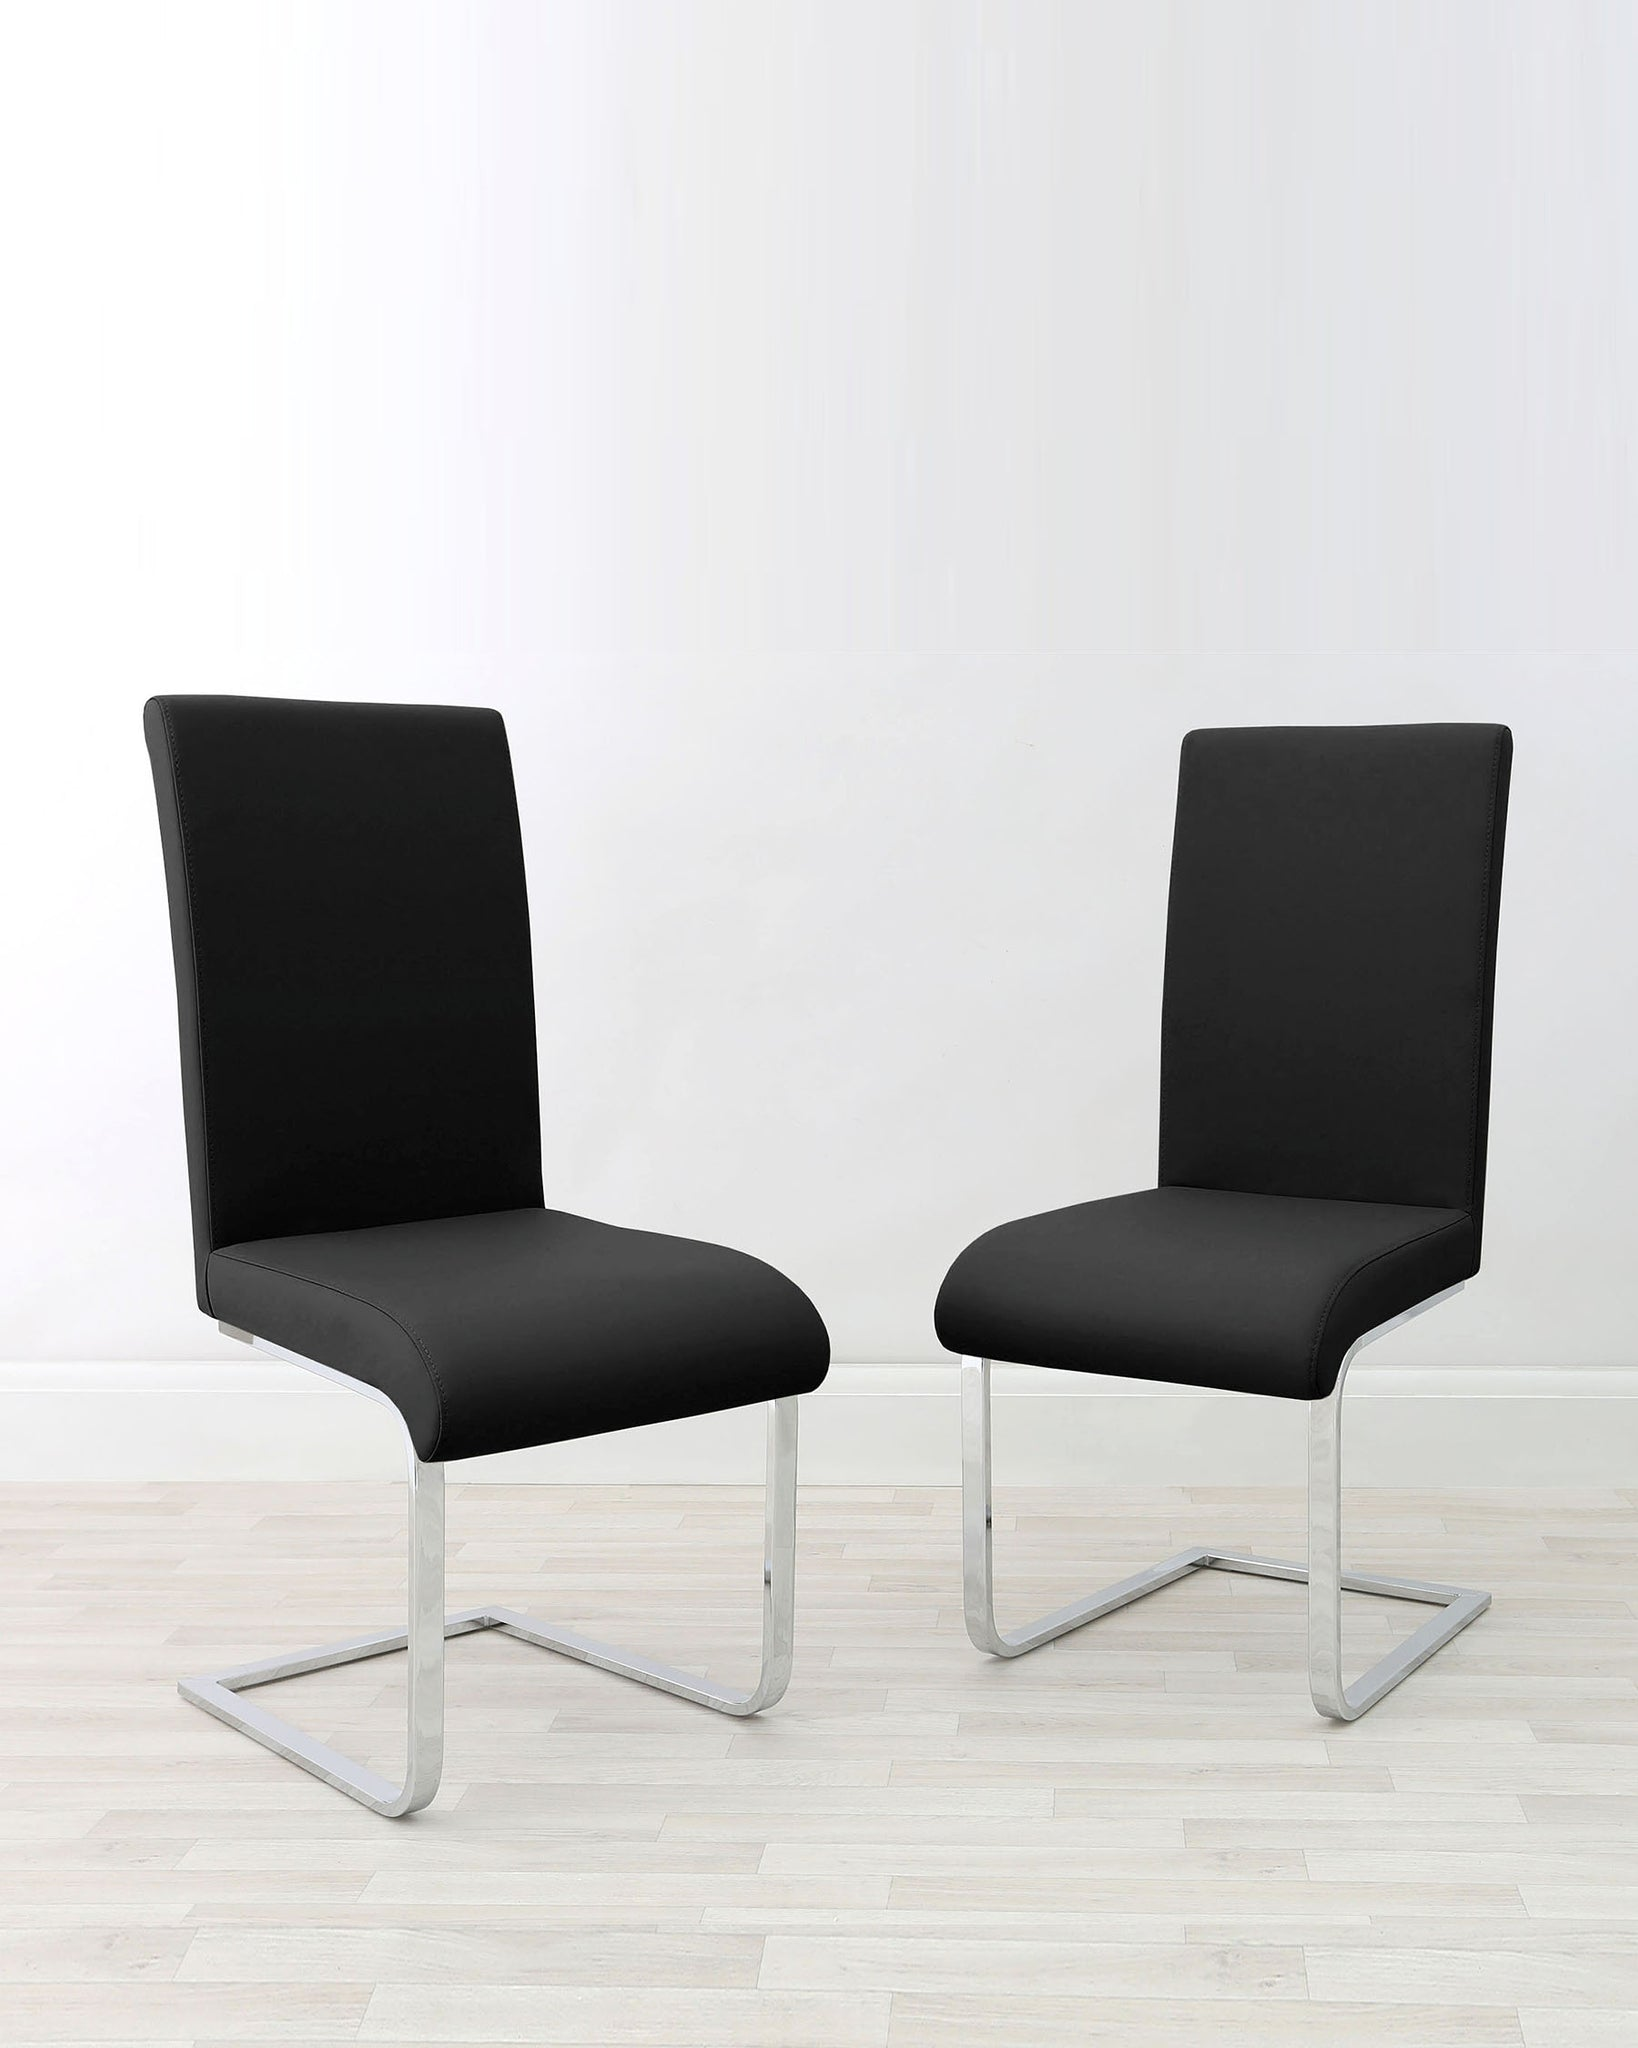 Imola Cantilever Black Faux Leather Chair - Set Of 2